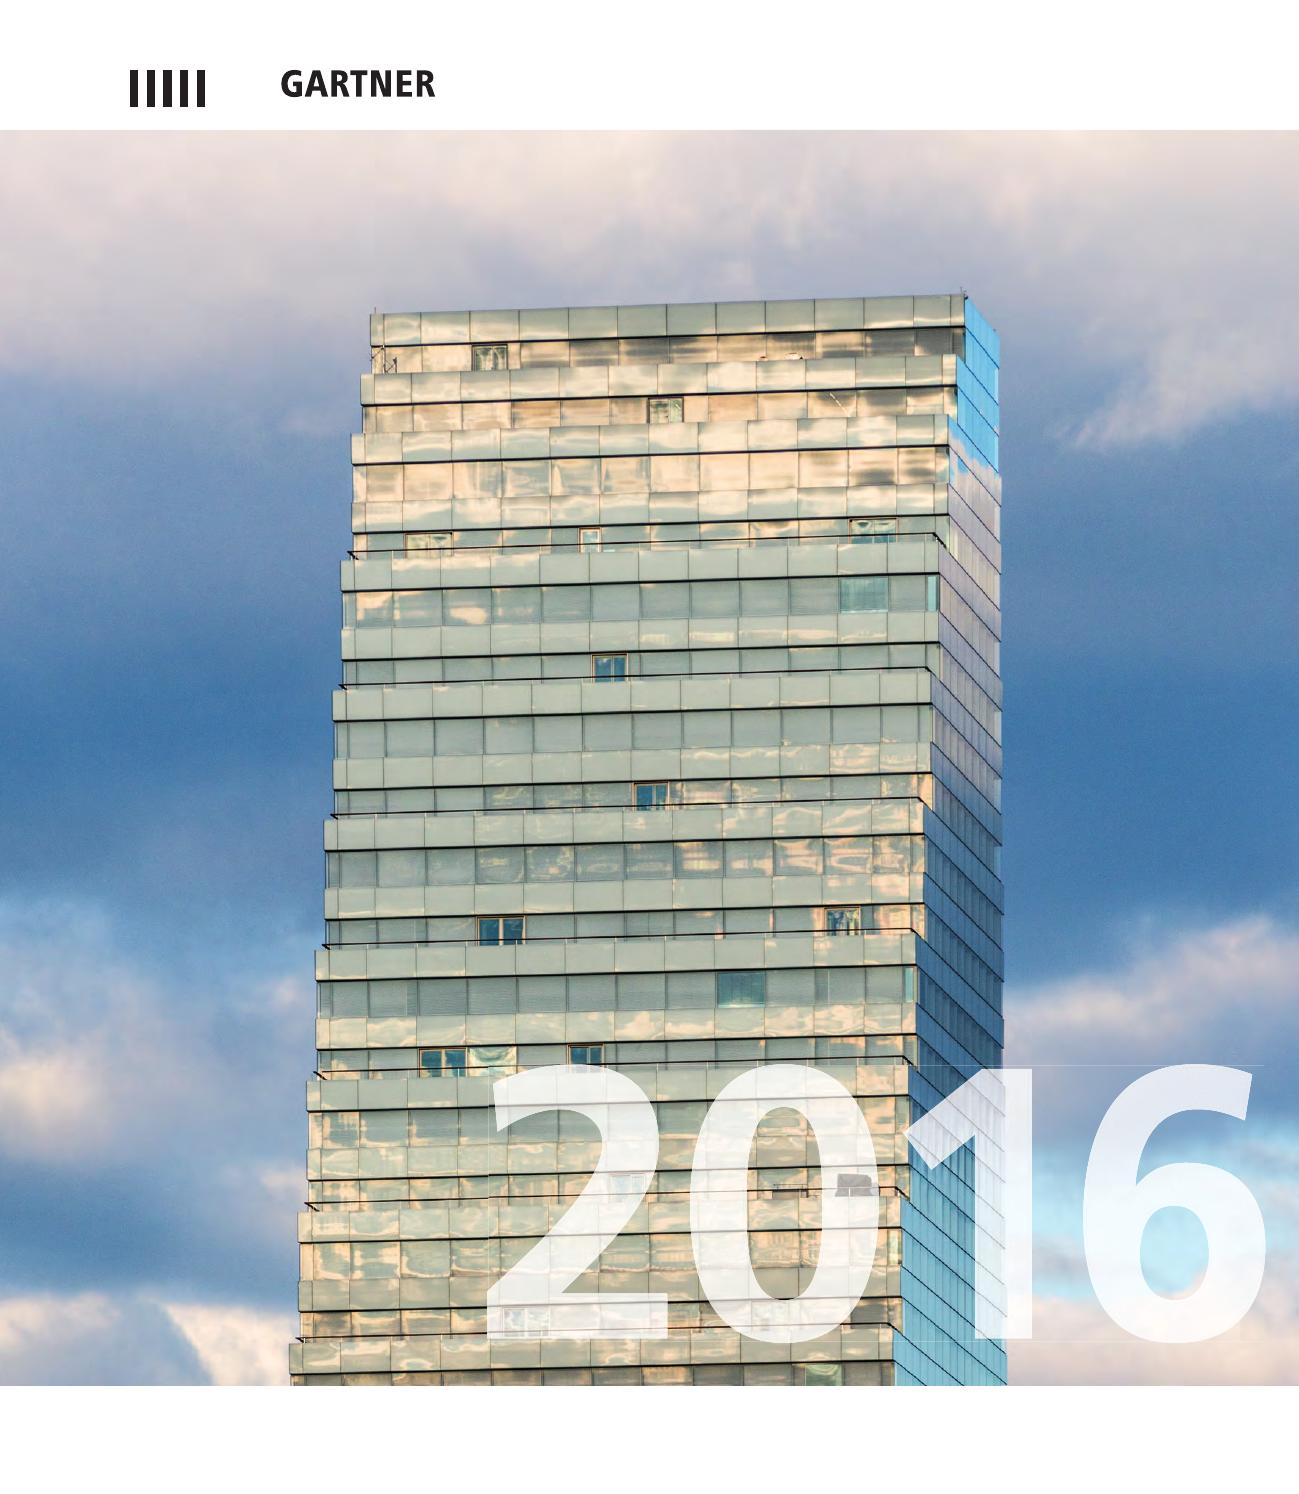 Gartner Calendar 2016 by Permasteelisa Group - issuu